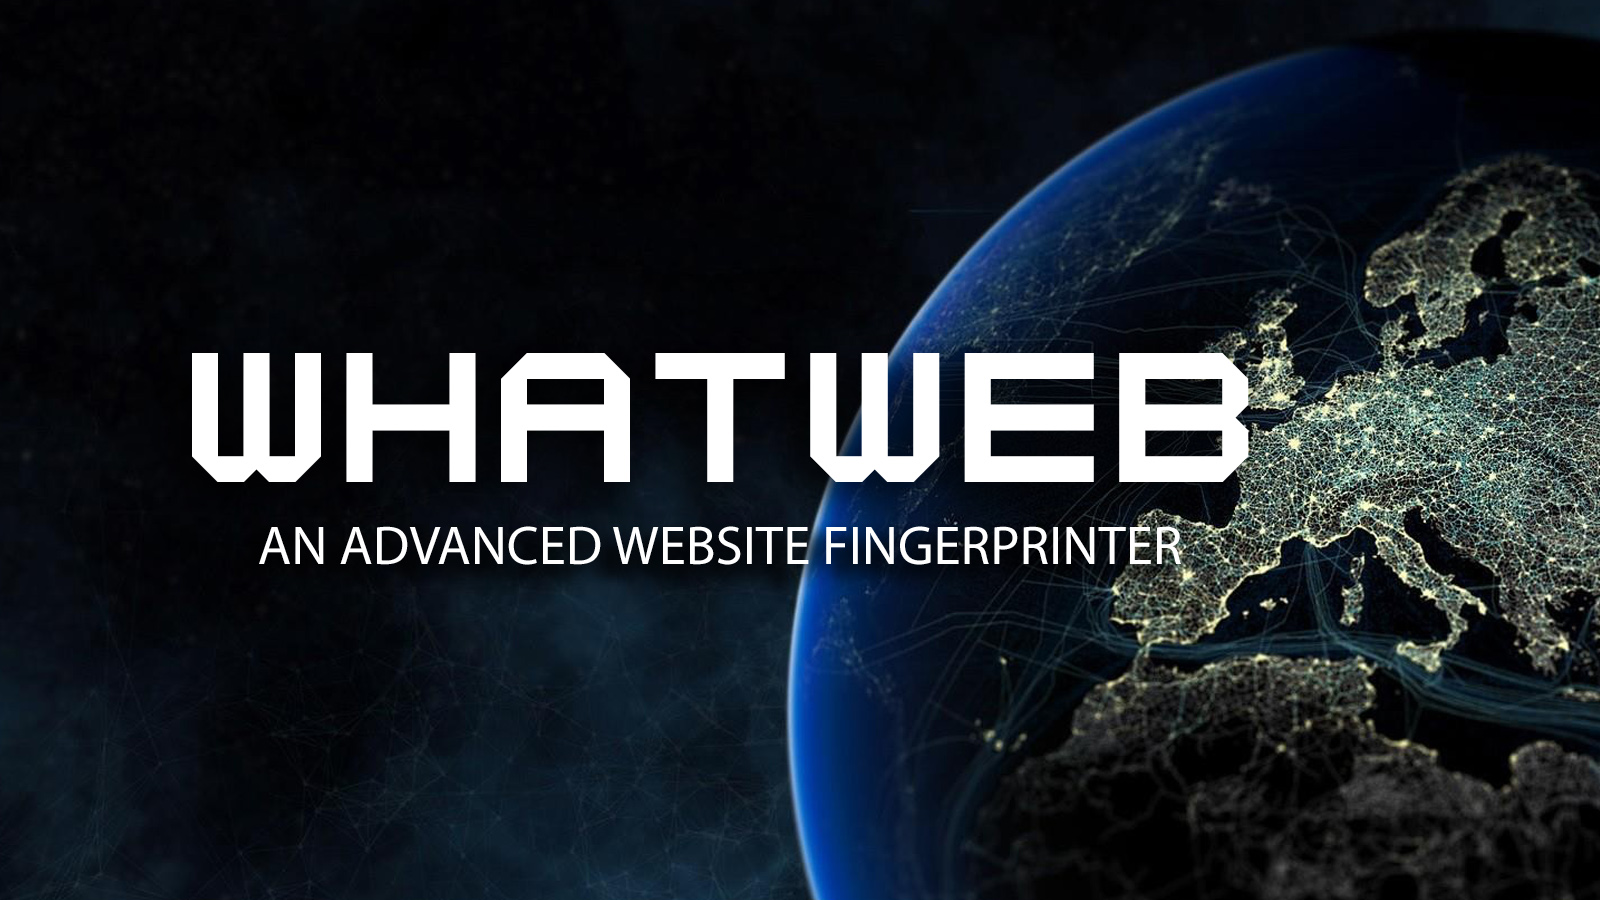 WhatWeb - An Advanced Website Fingerprinting Tool